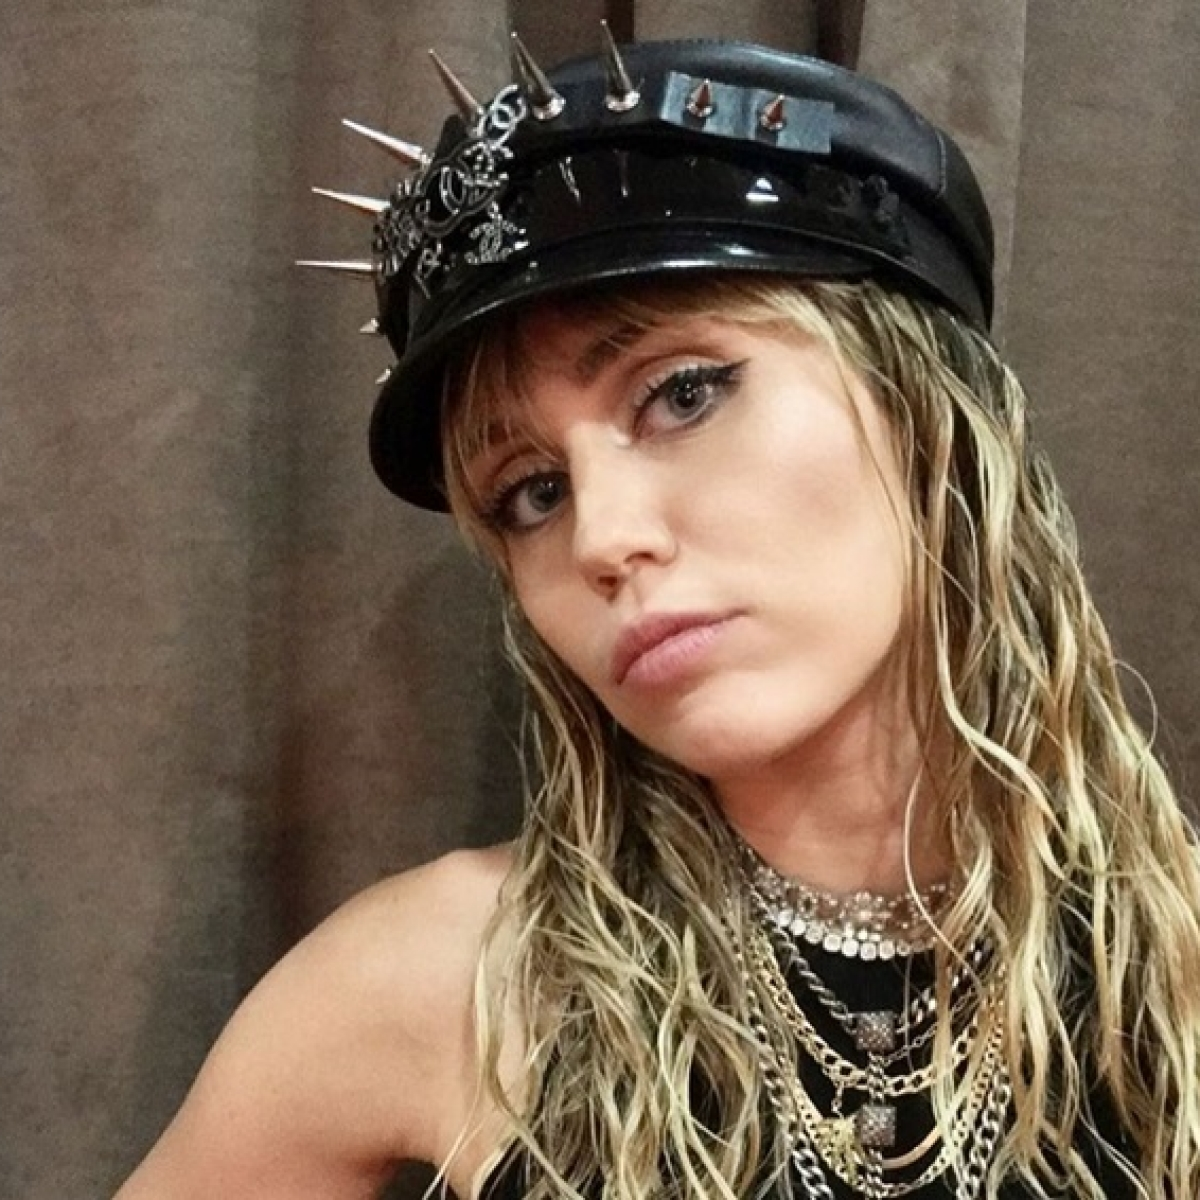 Miley Cyrus calls out VMAs directors for sexist comment about her performance